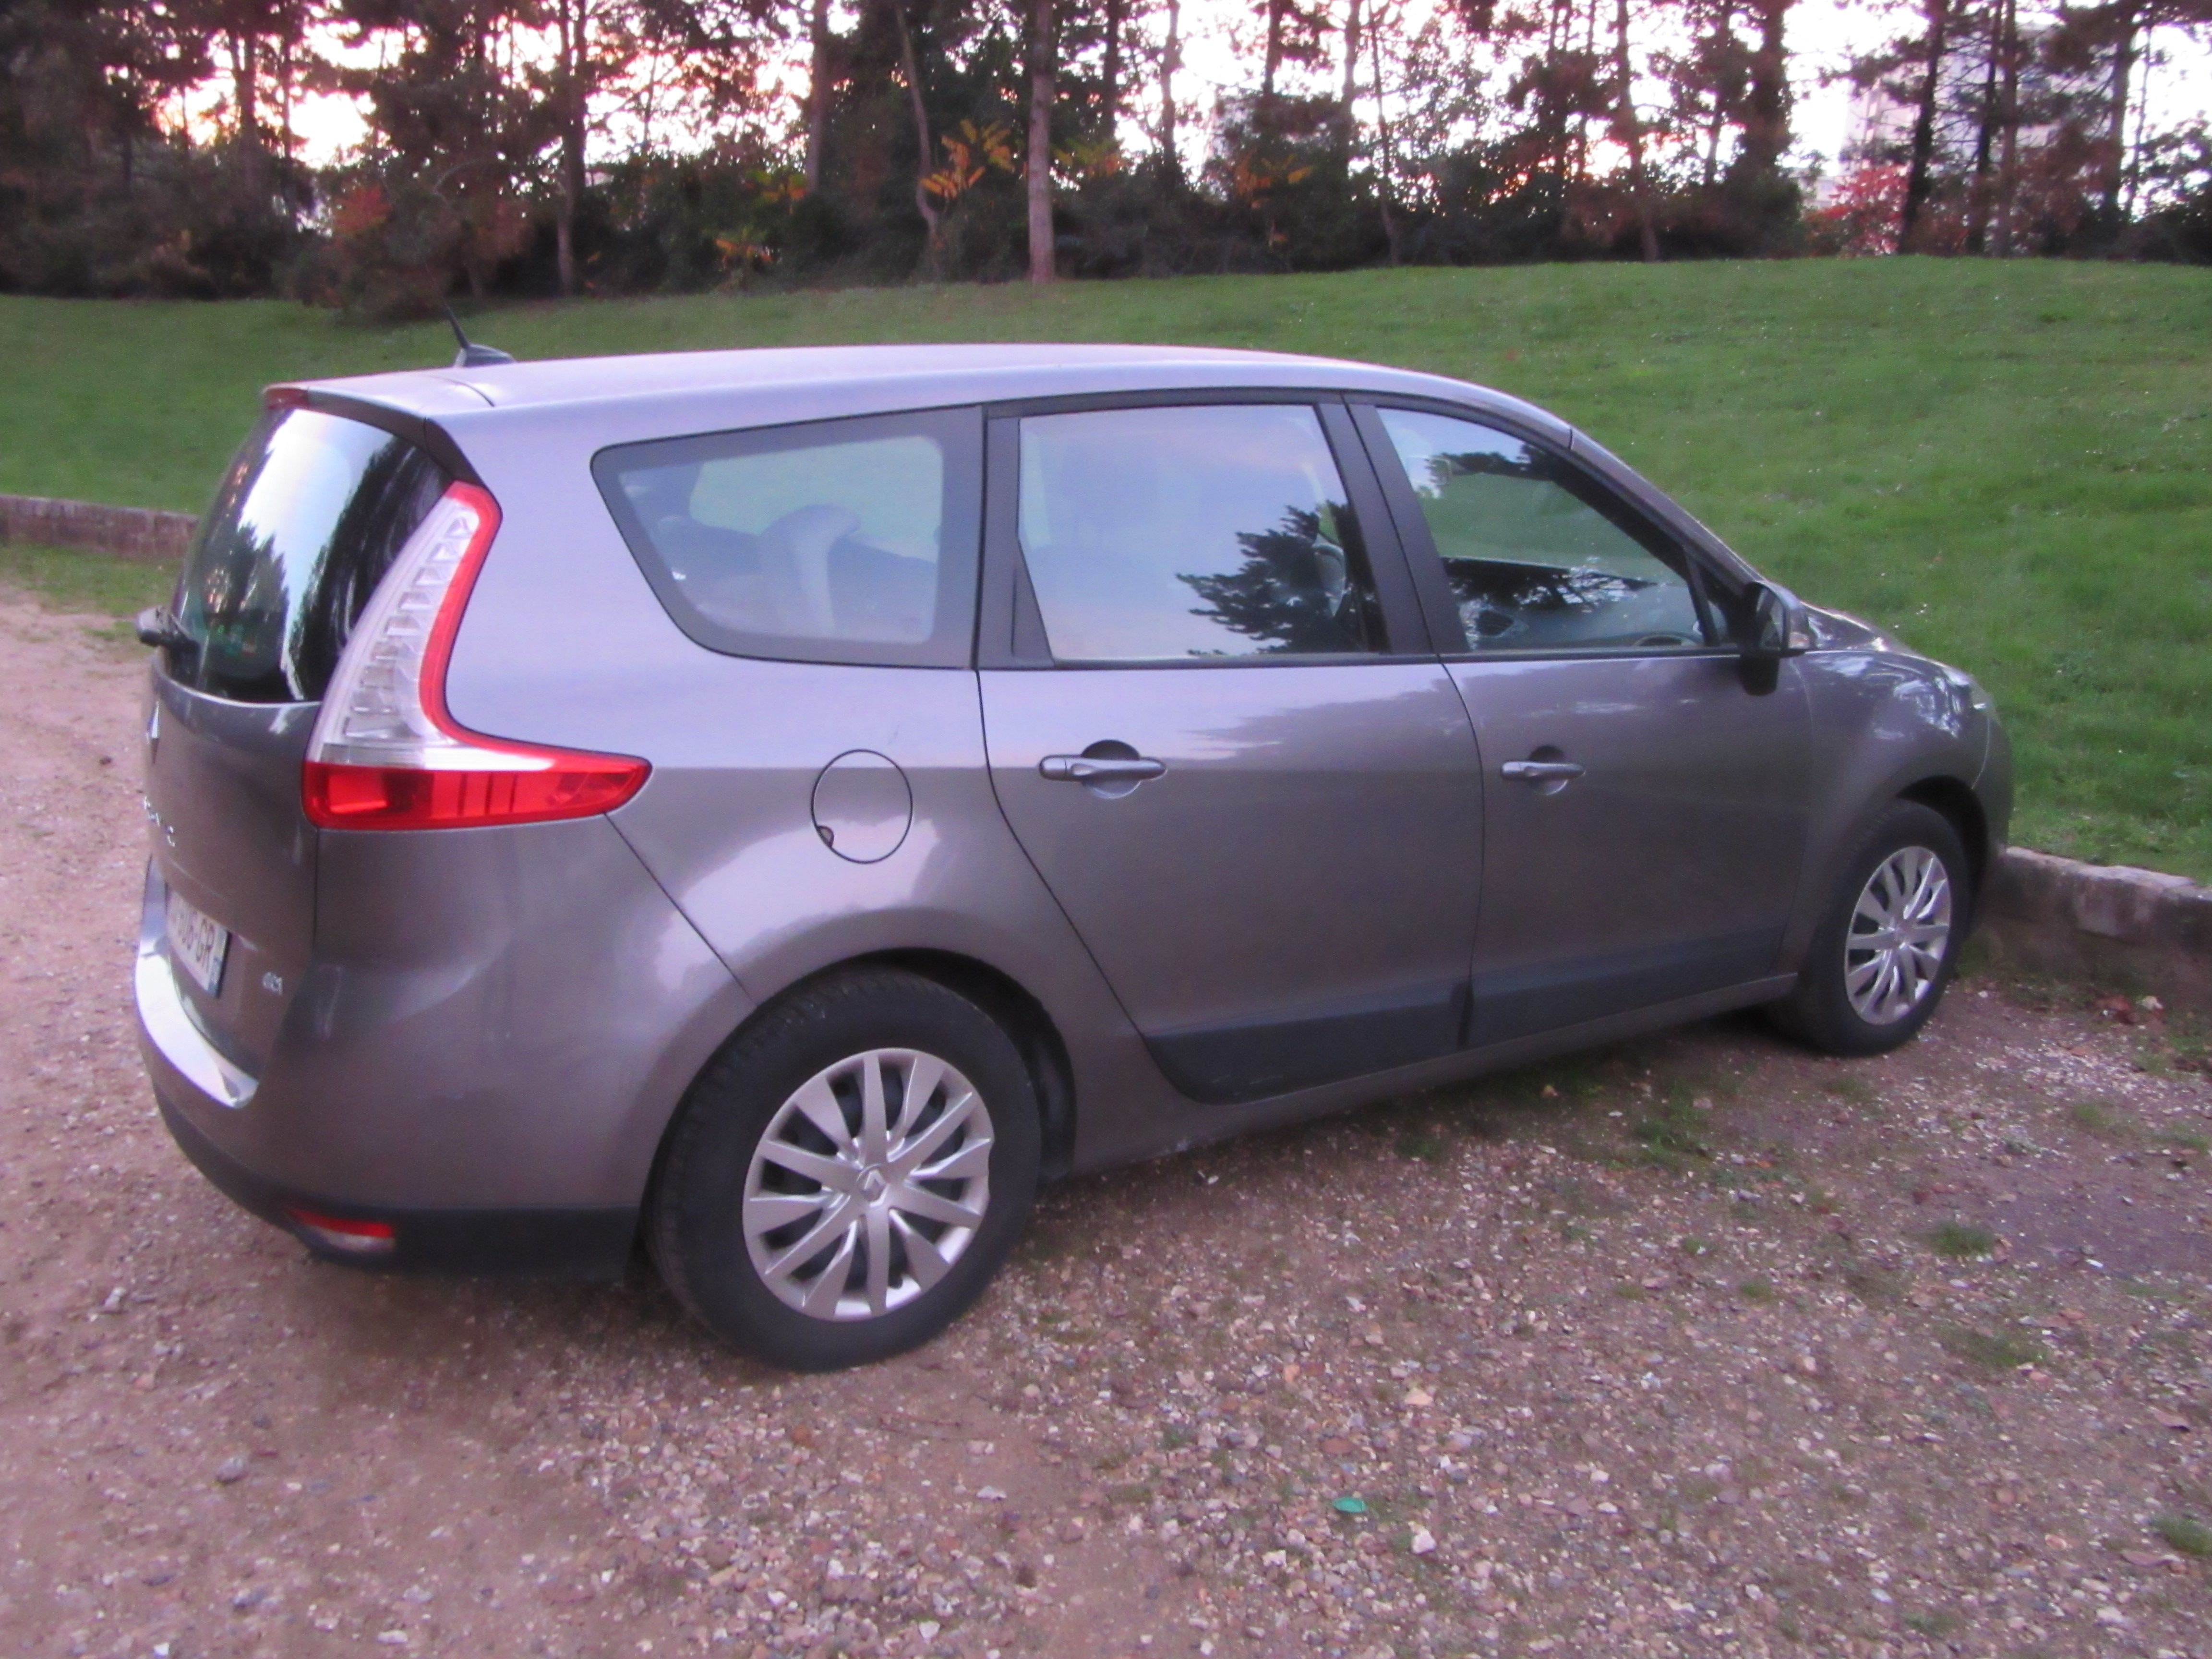 RENAULT GRAND SCENIC 7 places, 2010, Diesel, 7 places